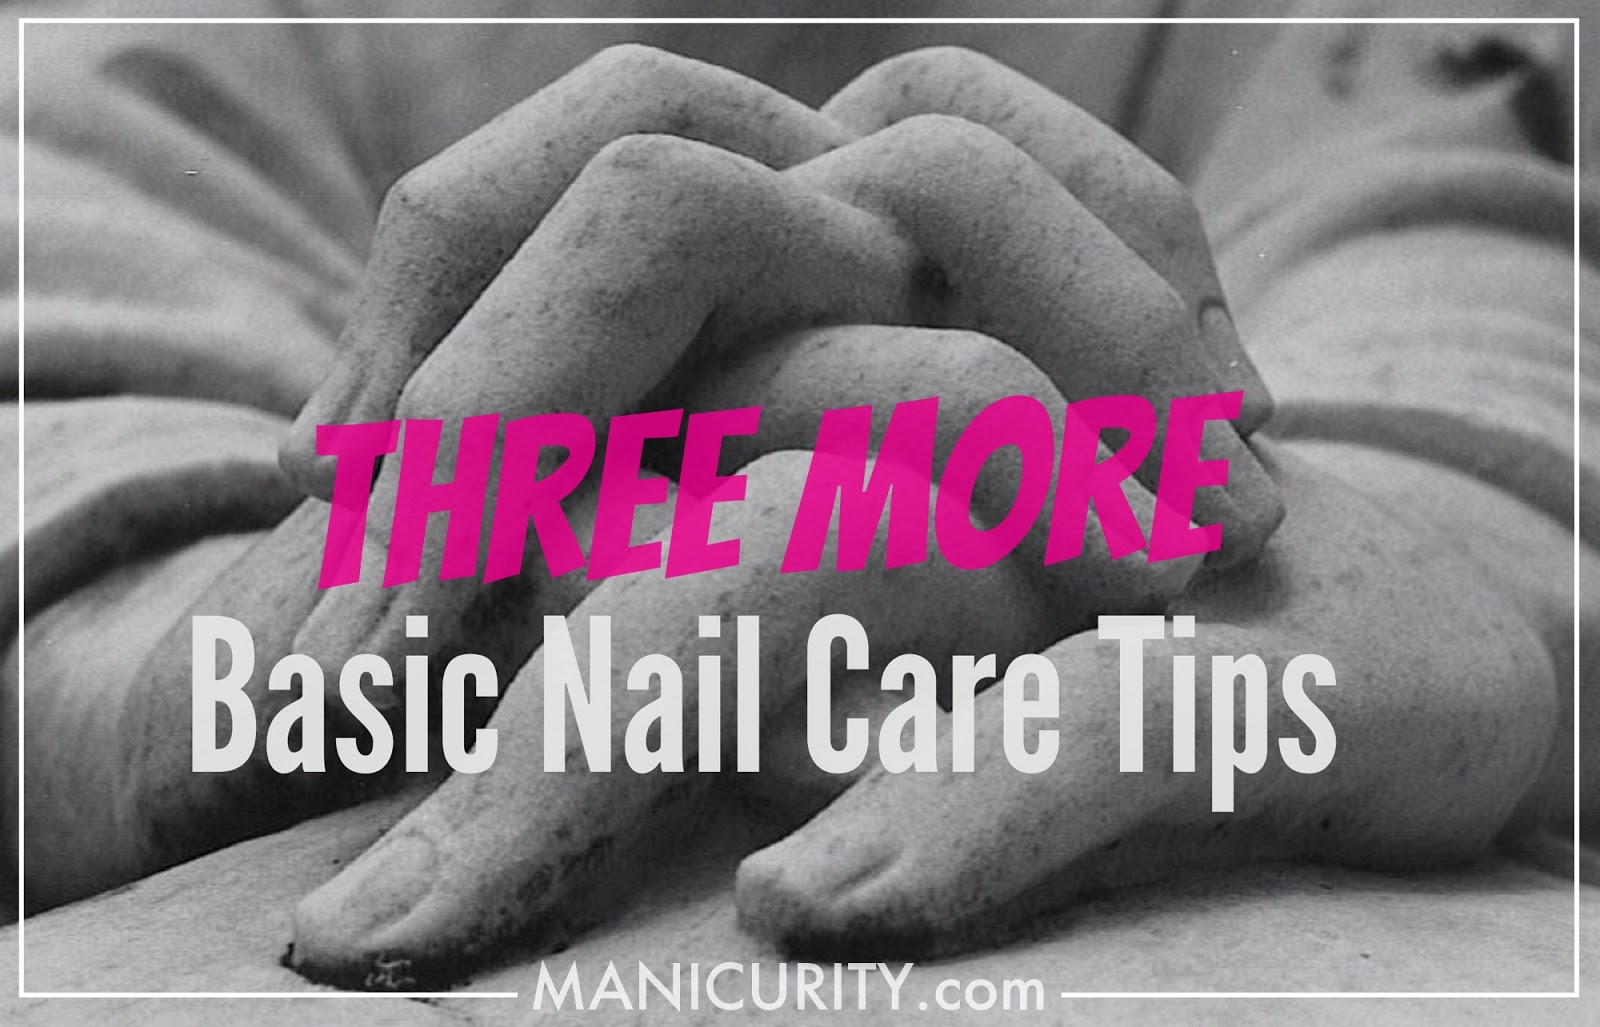 Three More Basic Nail Care Tips: Super Easy Ways to Have Healthier Nails! | Manicurity.com